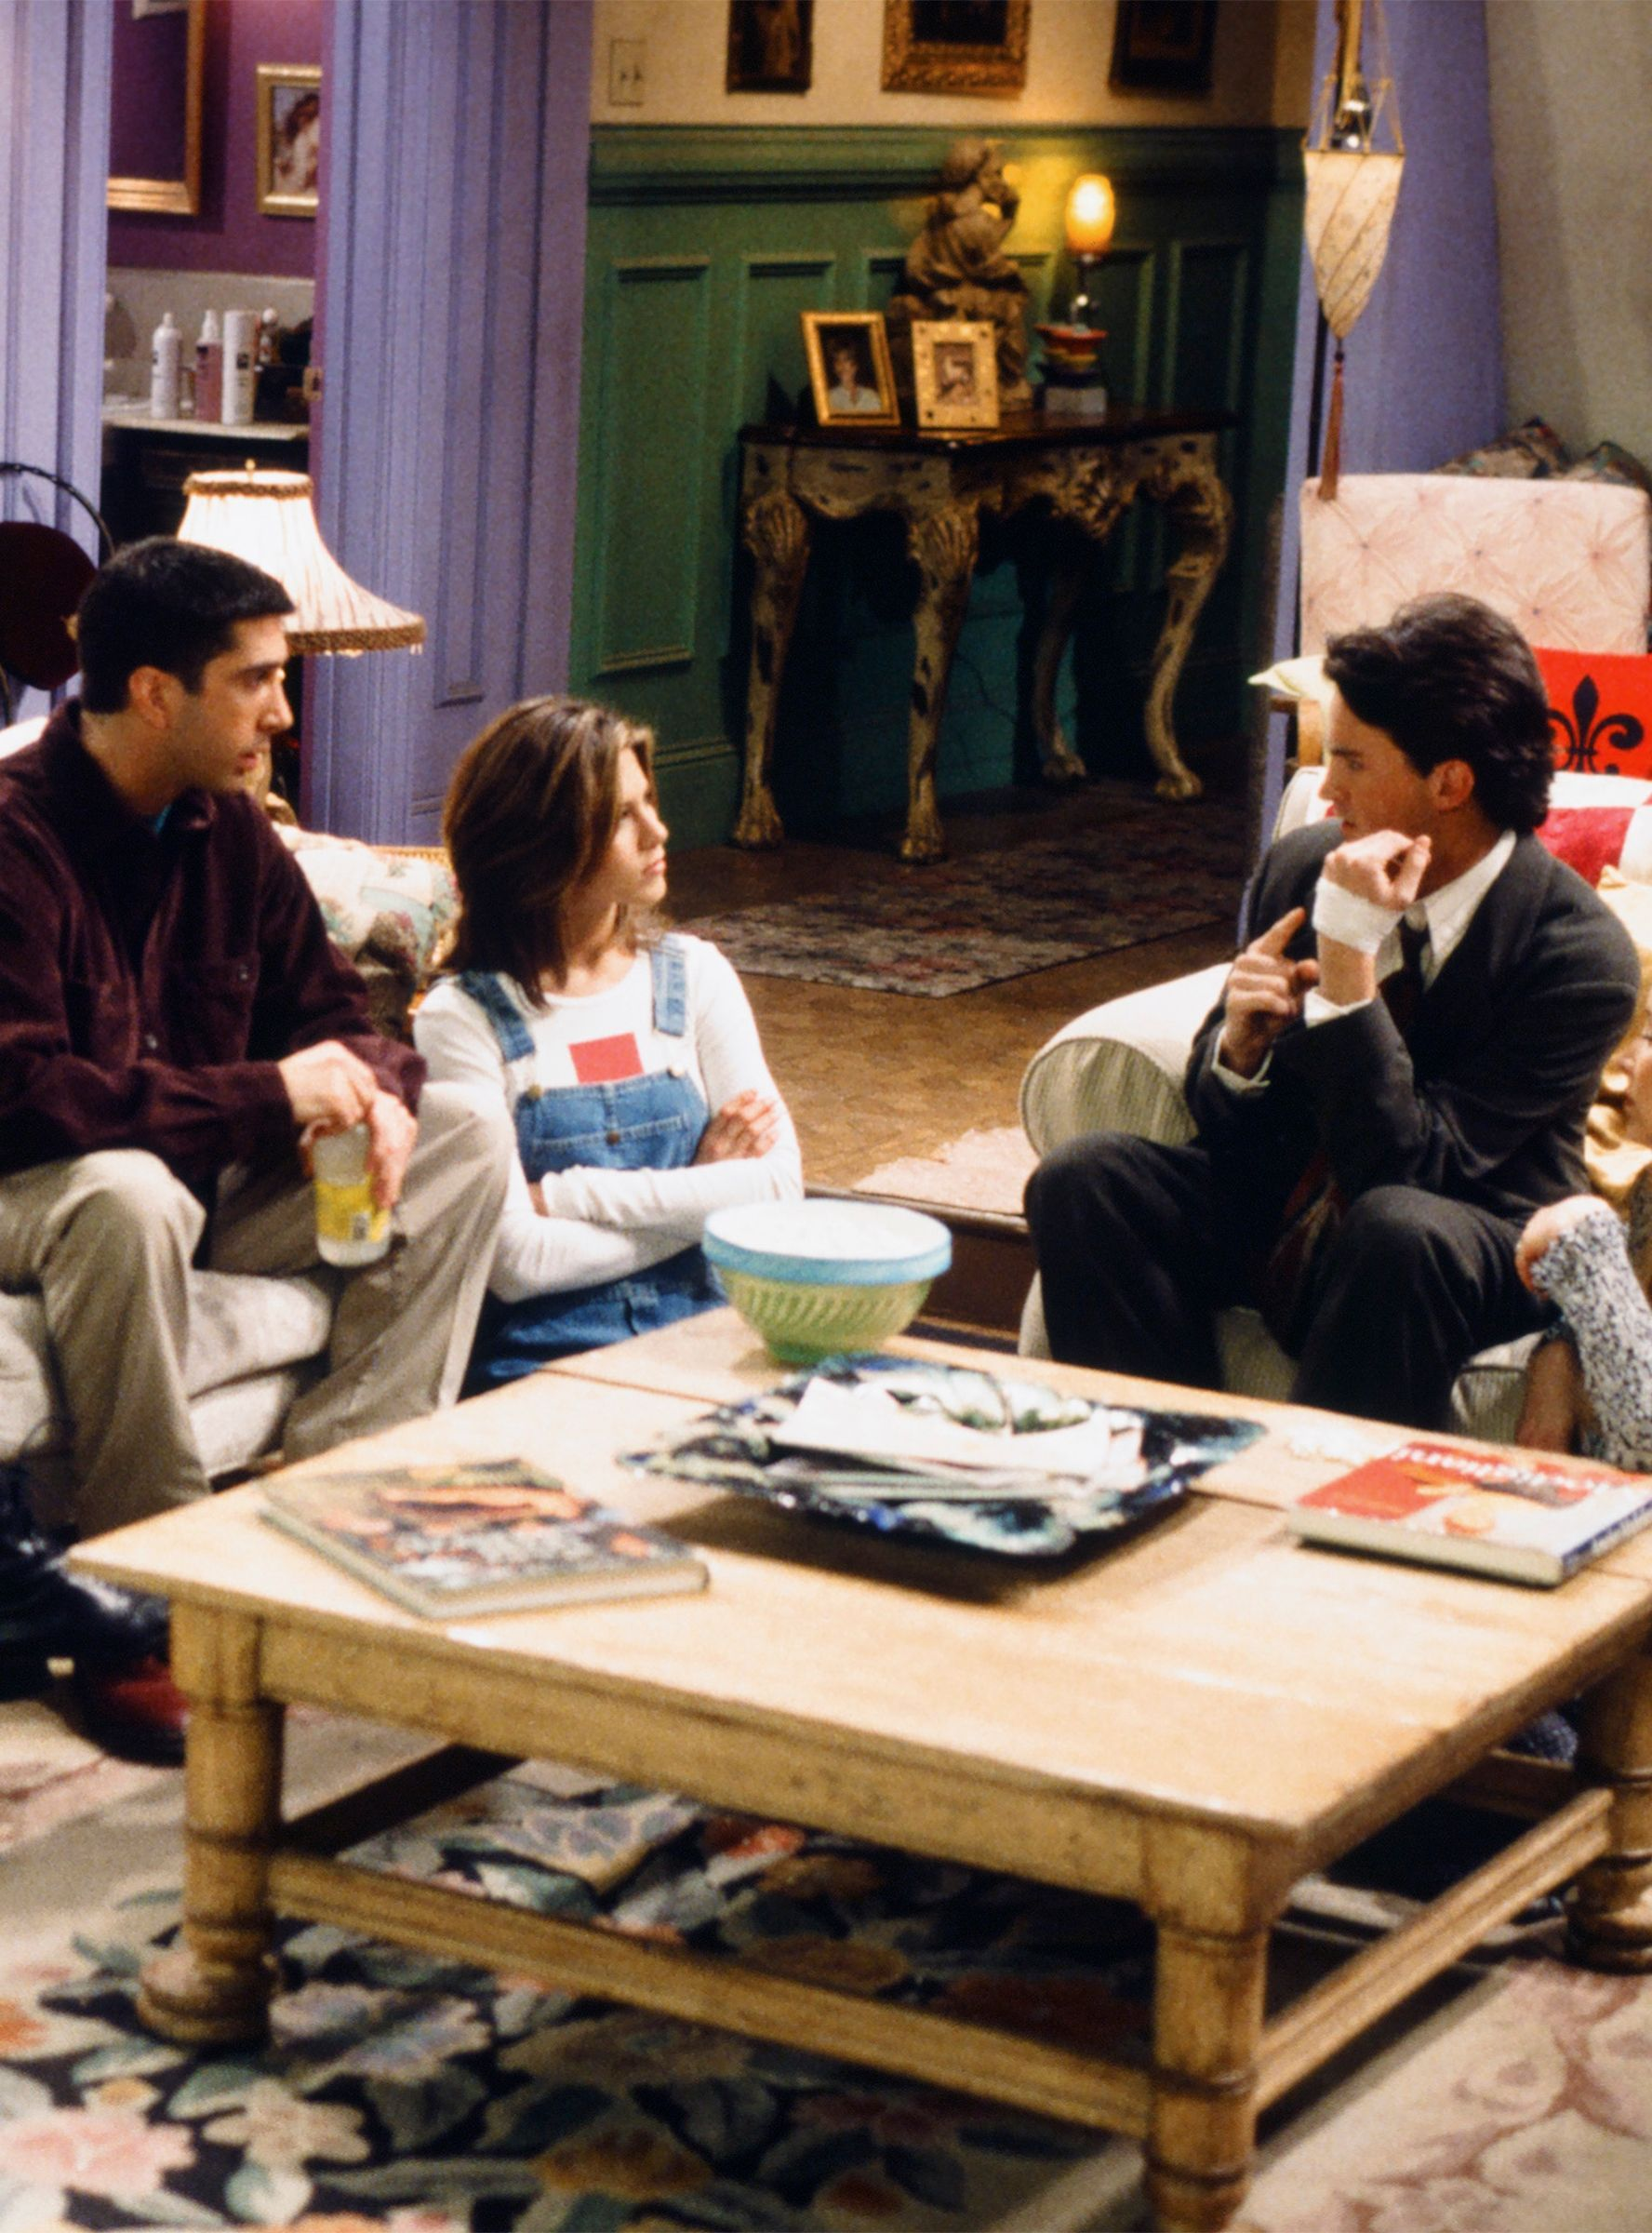 How much would the friends apartment or the stranger